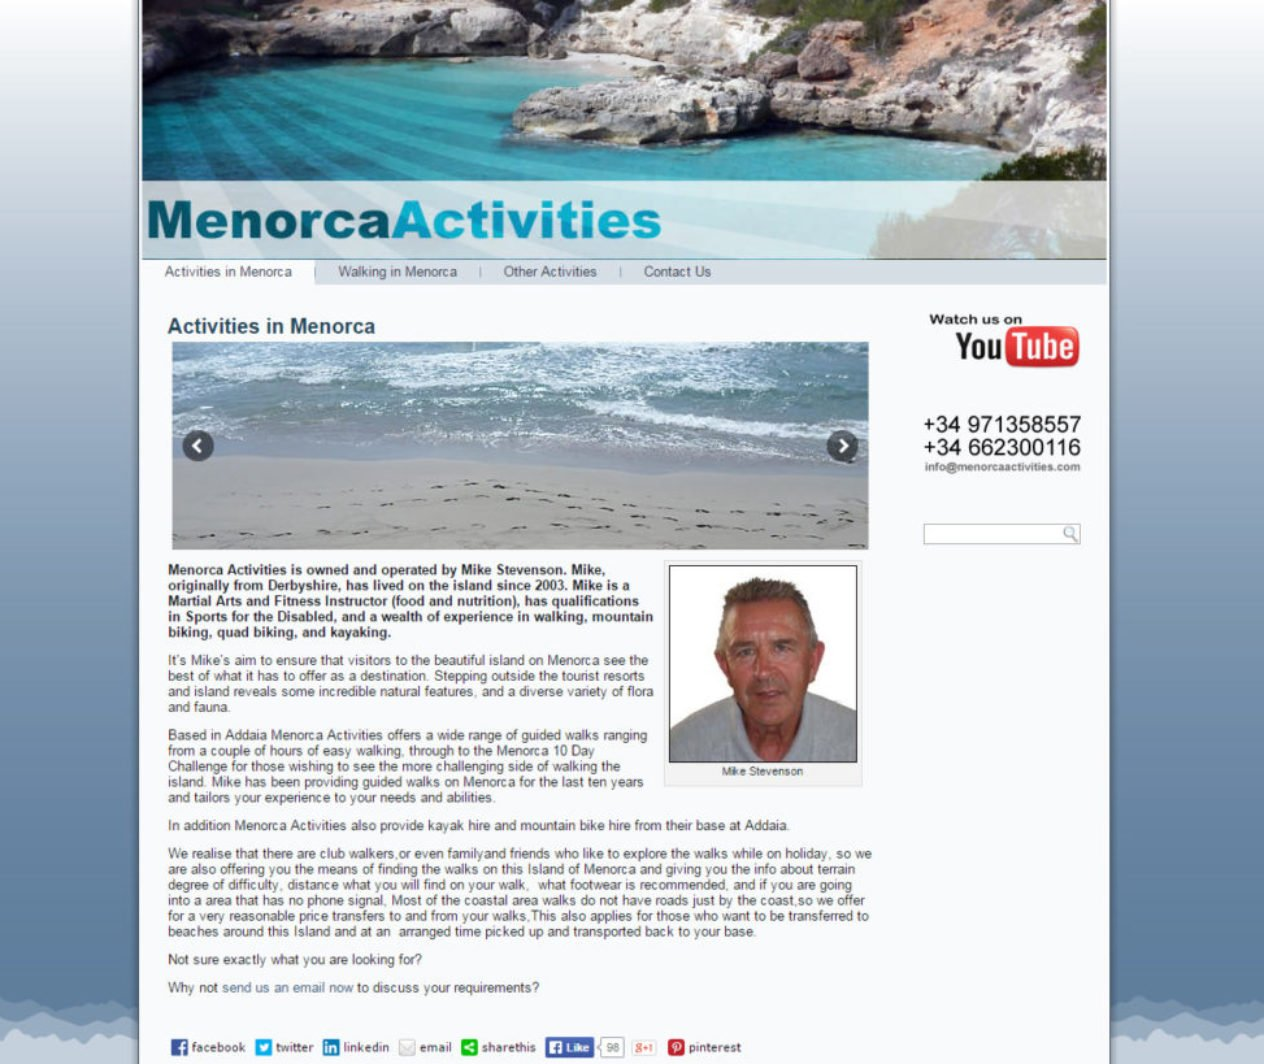 Menorca Activities